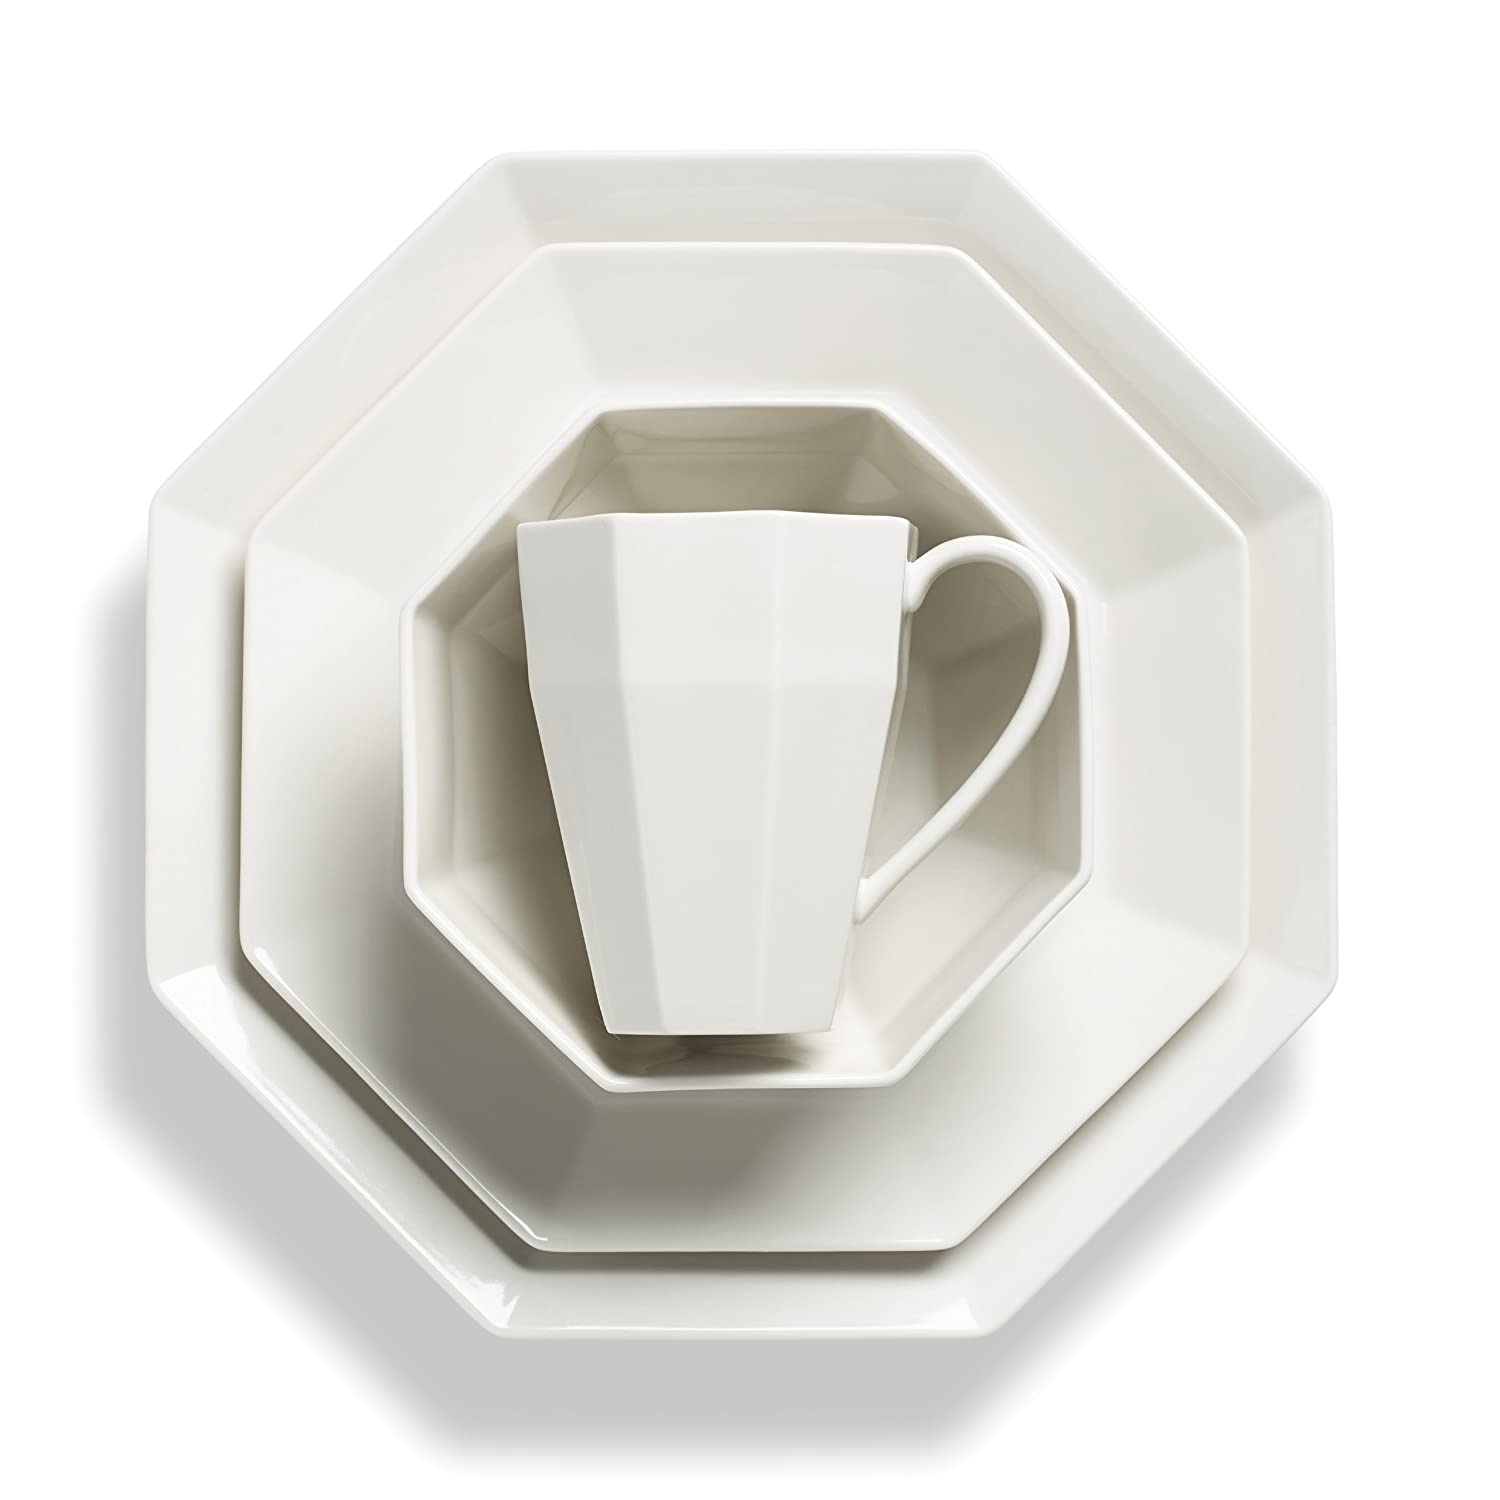 Lenox White Octagon Shape  4-Pc Place Setting